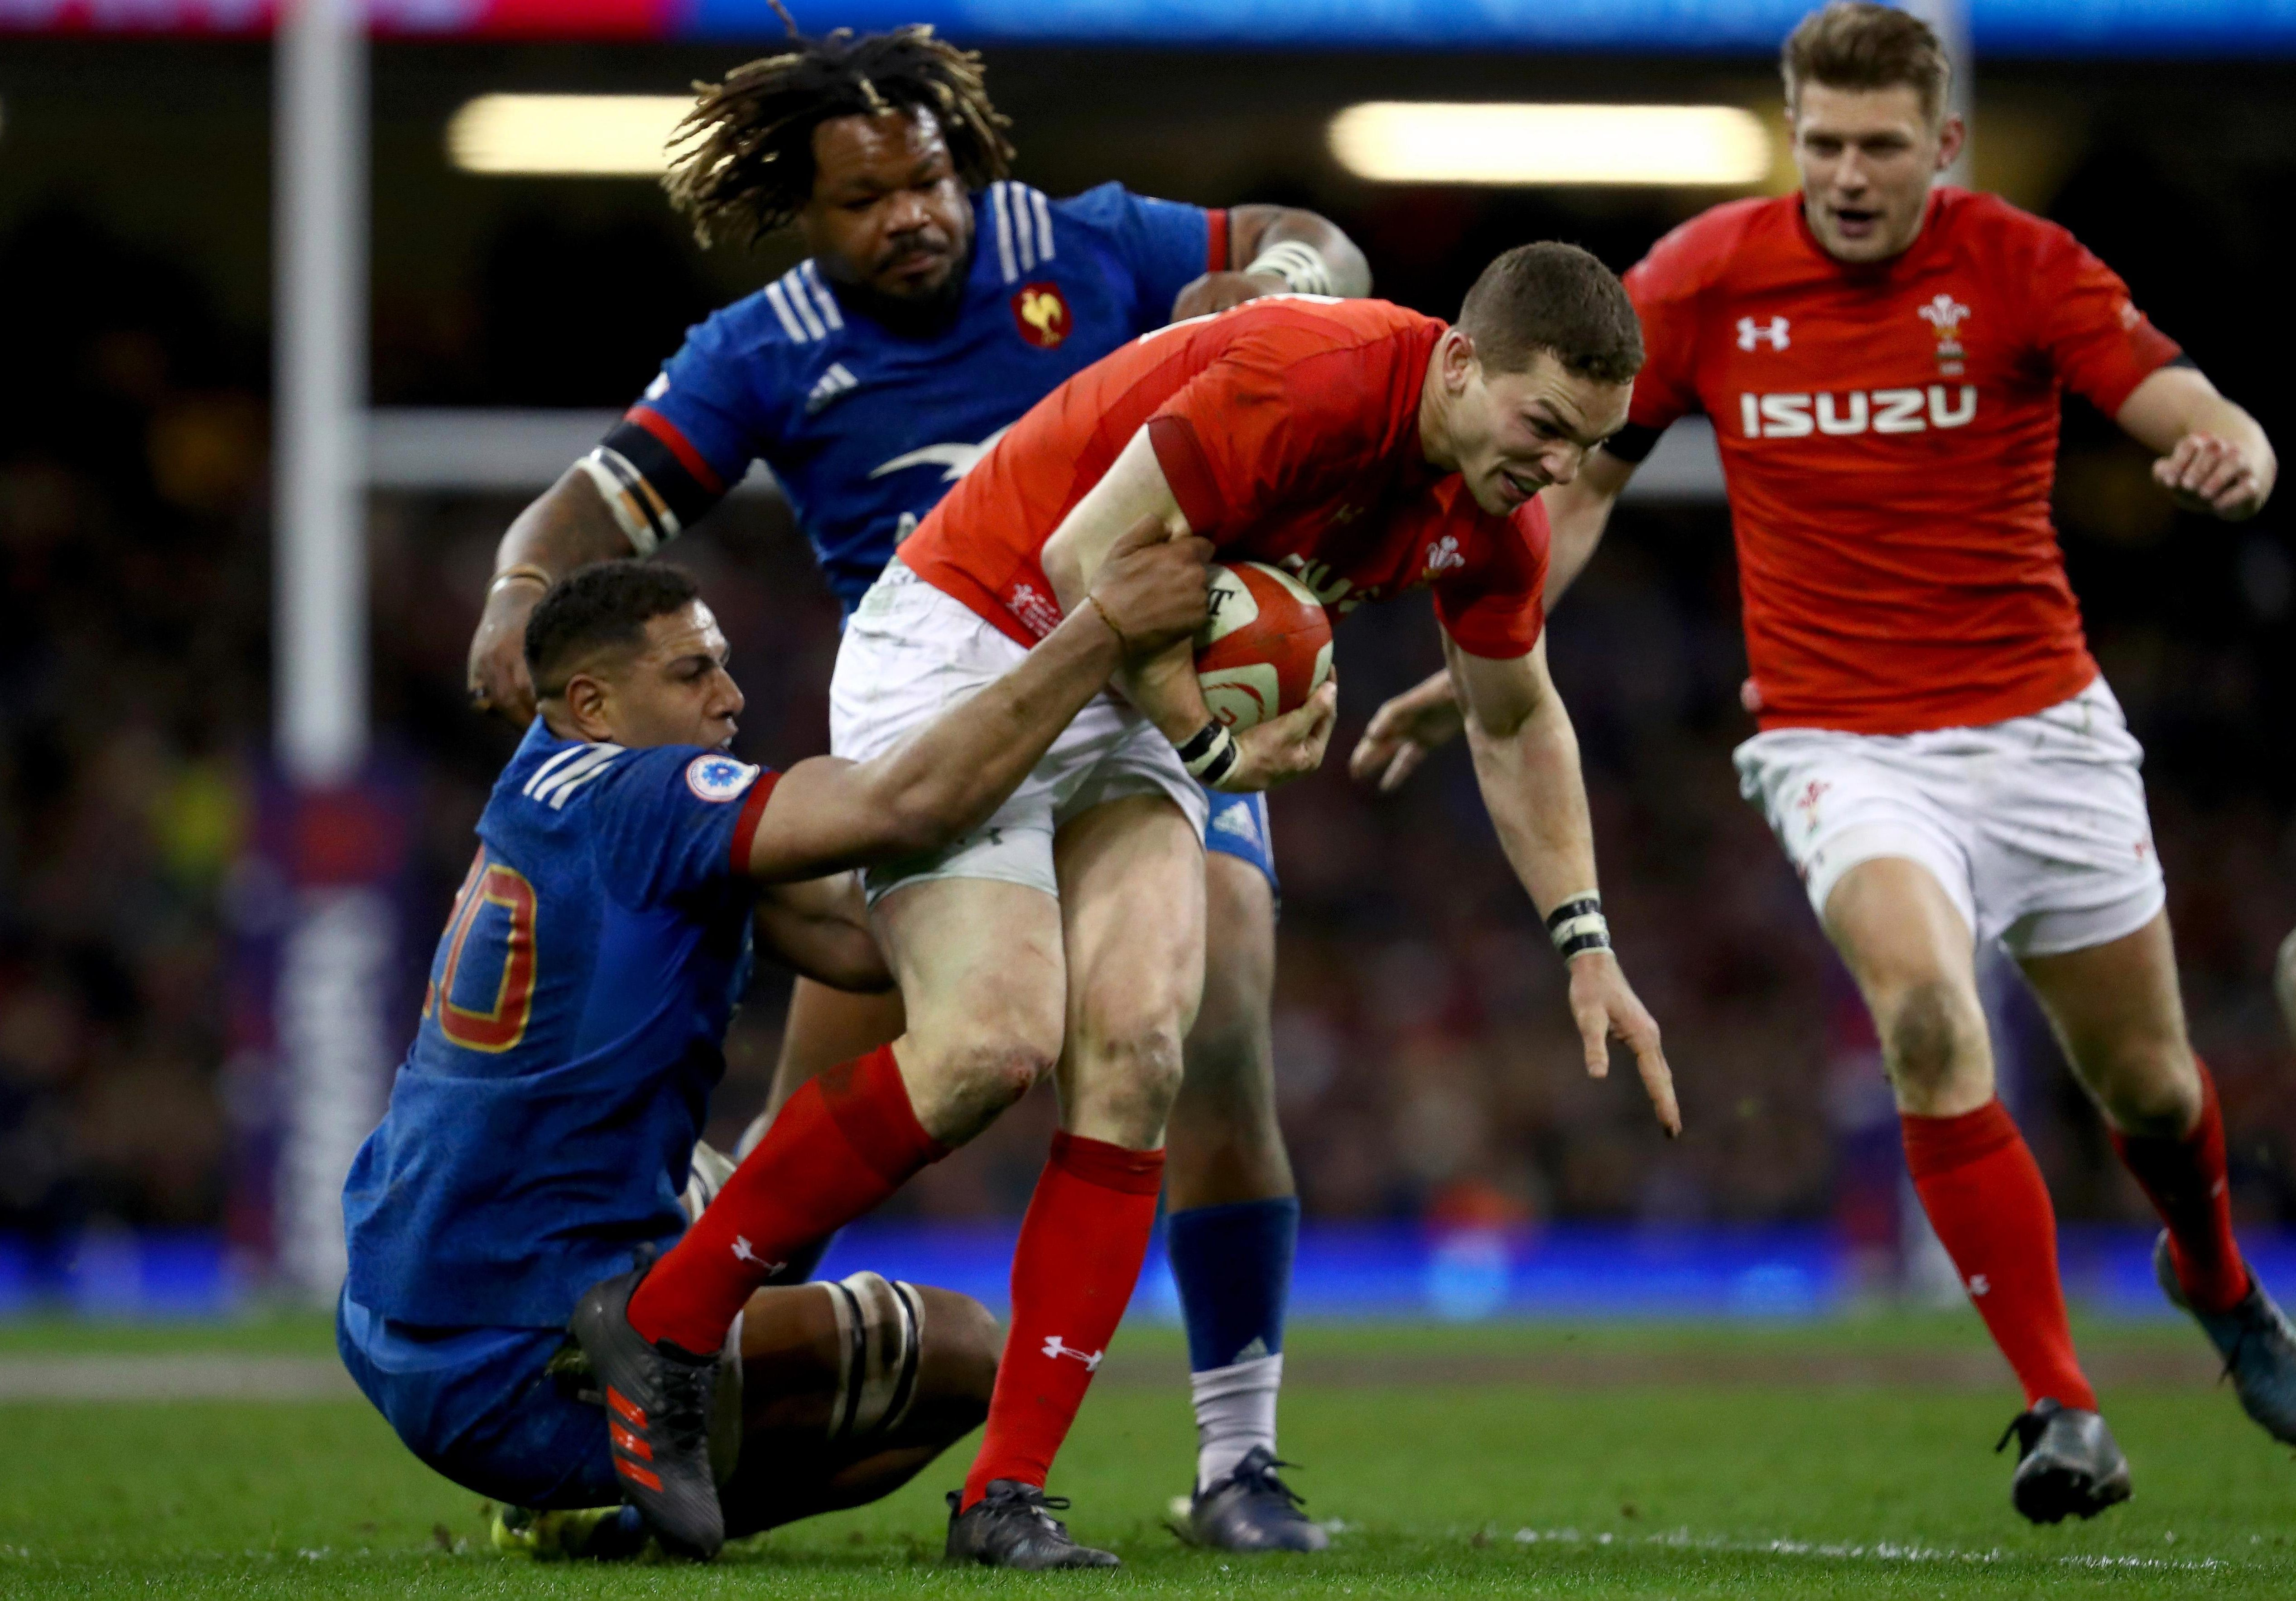 North evades a tackle from Mathieu Babillot in Wales' Six Nations clash with France